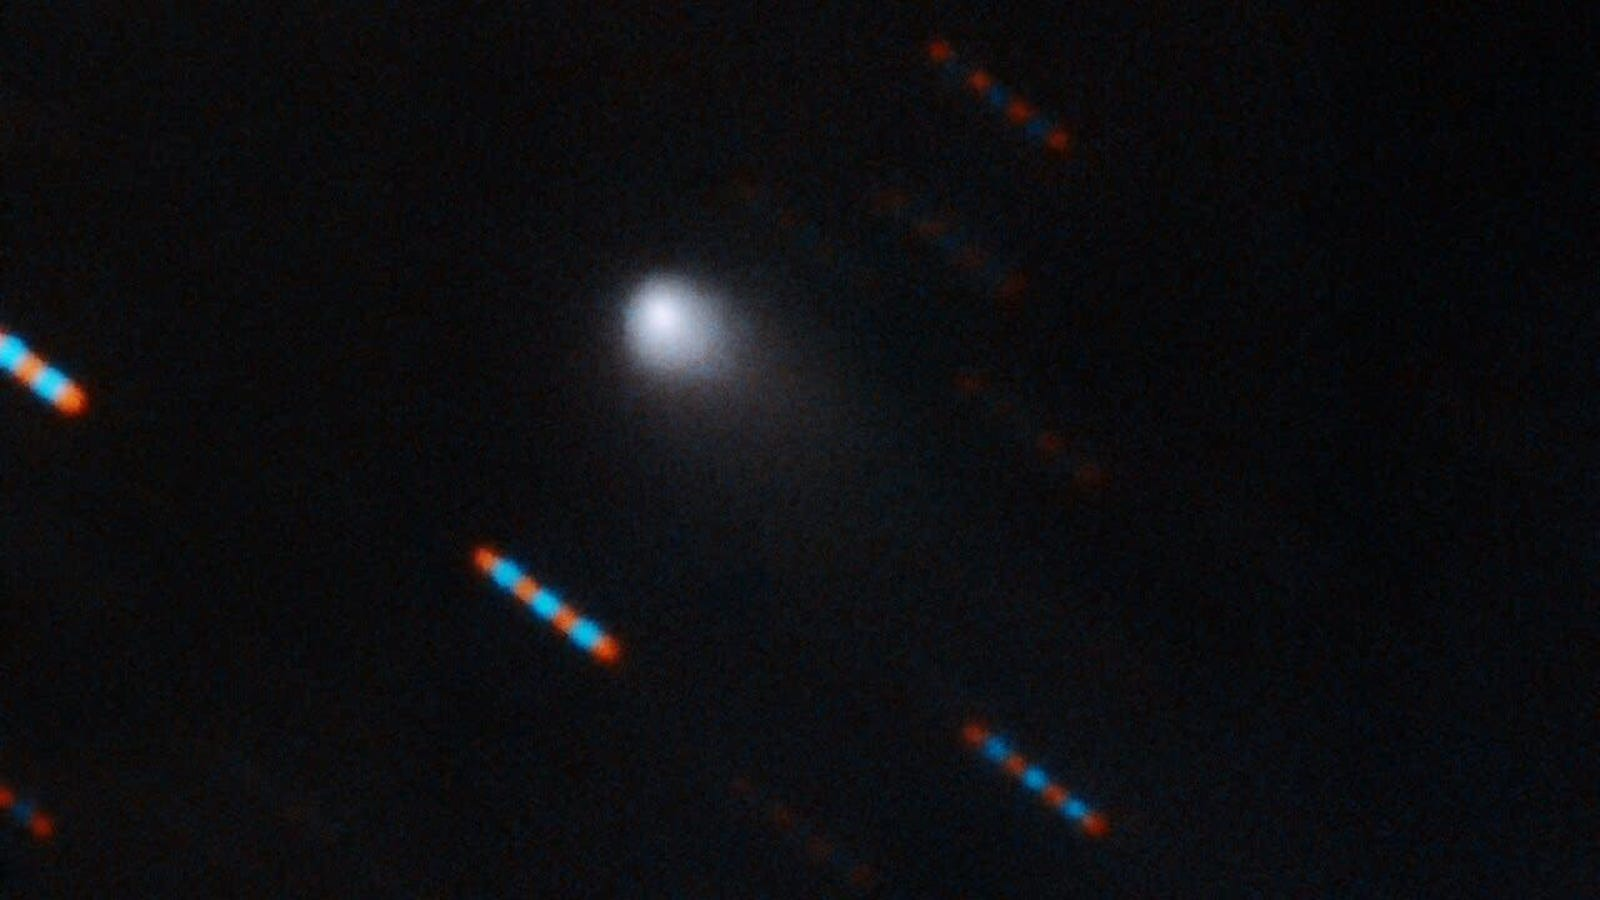 Newly Discovered Interstellar Comet Has an Official Name: 2I/Borisov